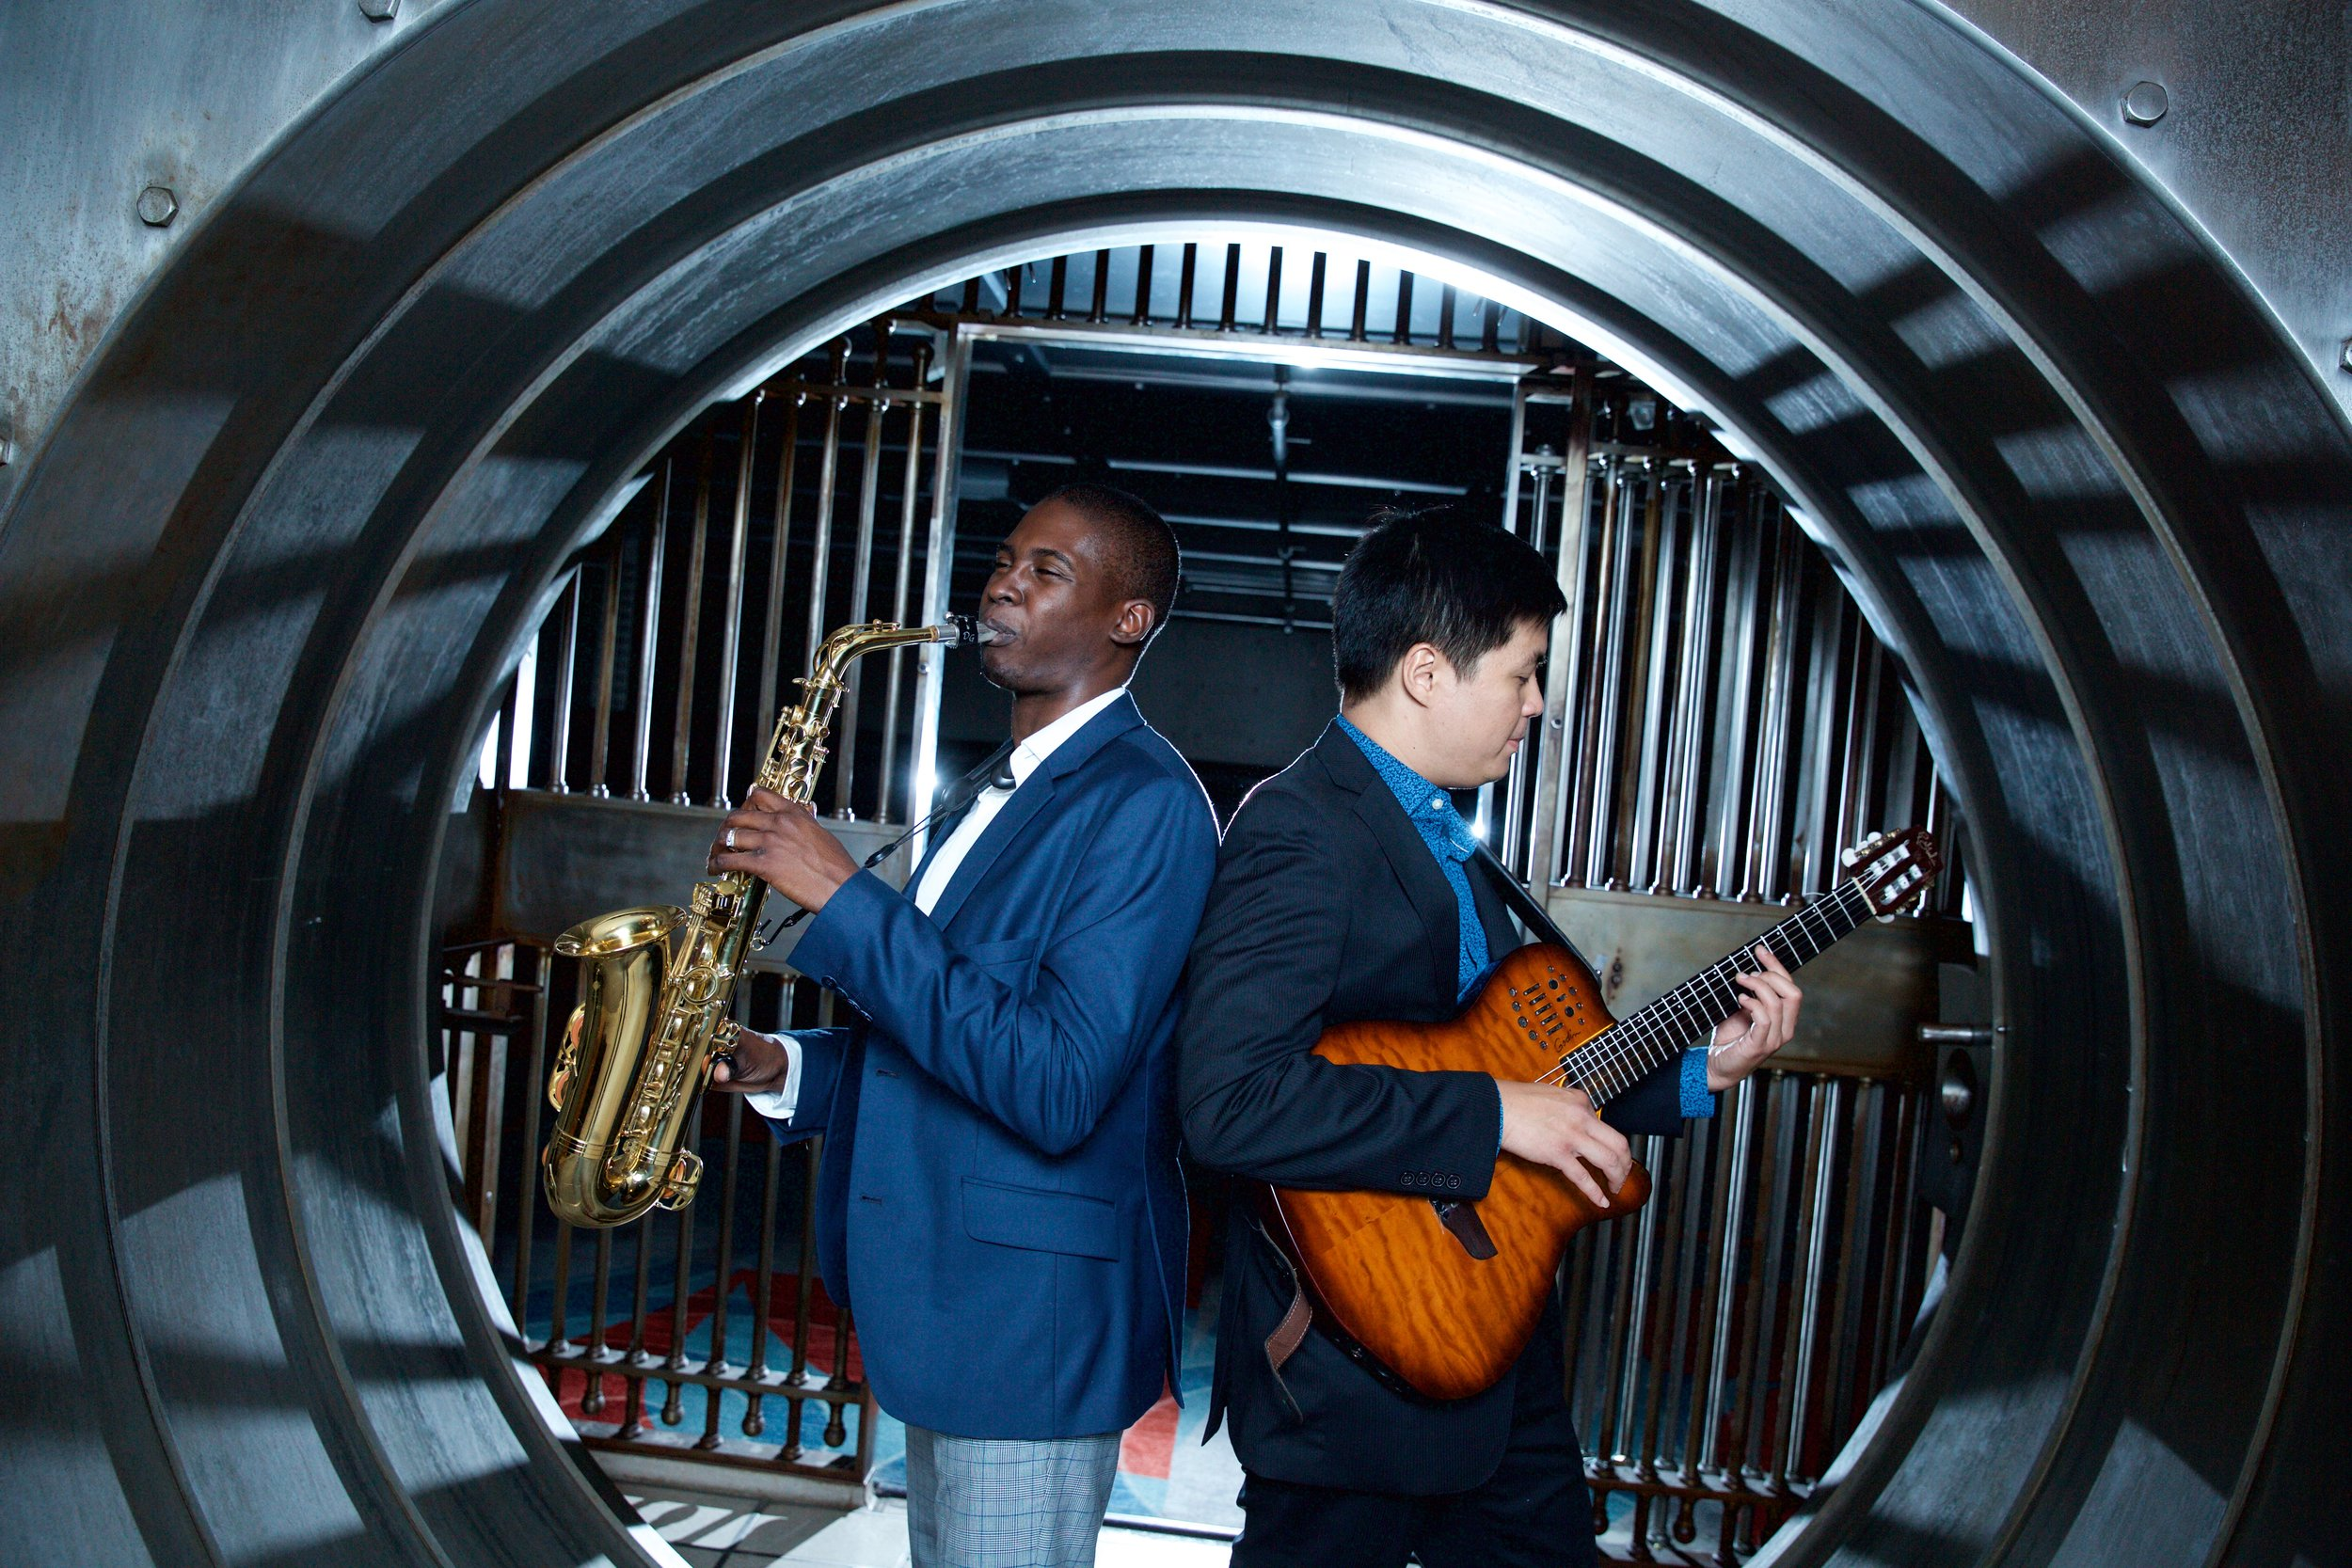 Live Music - Your wedding is one of the most important days of your life and it is Duetto sole mission to make it both an immersive and memorable. At Duetto, we pride ourselves in having the best musicians in the city. Whether you need a solo saxophonist, or an 8 piece motown band, Duetto have everything you need to make your wedding special.